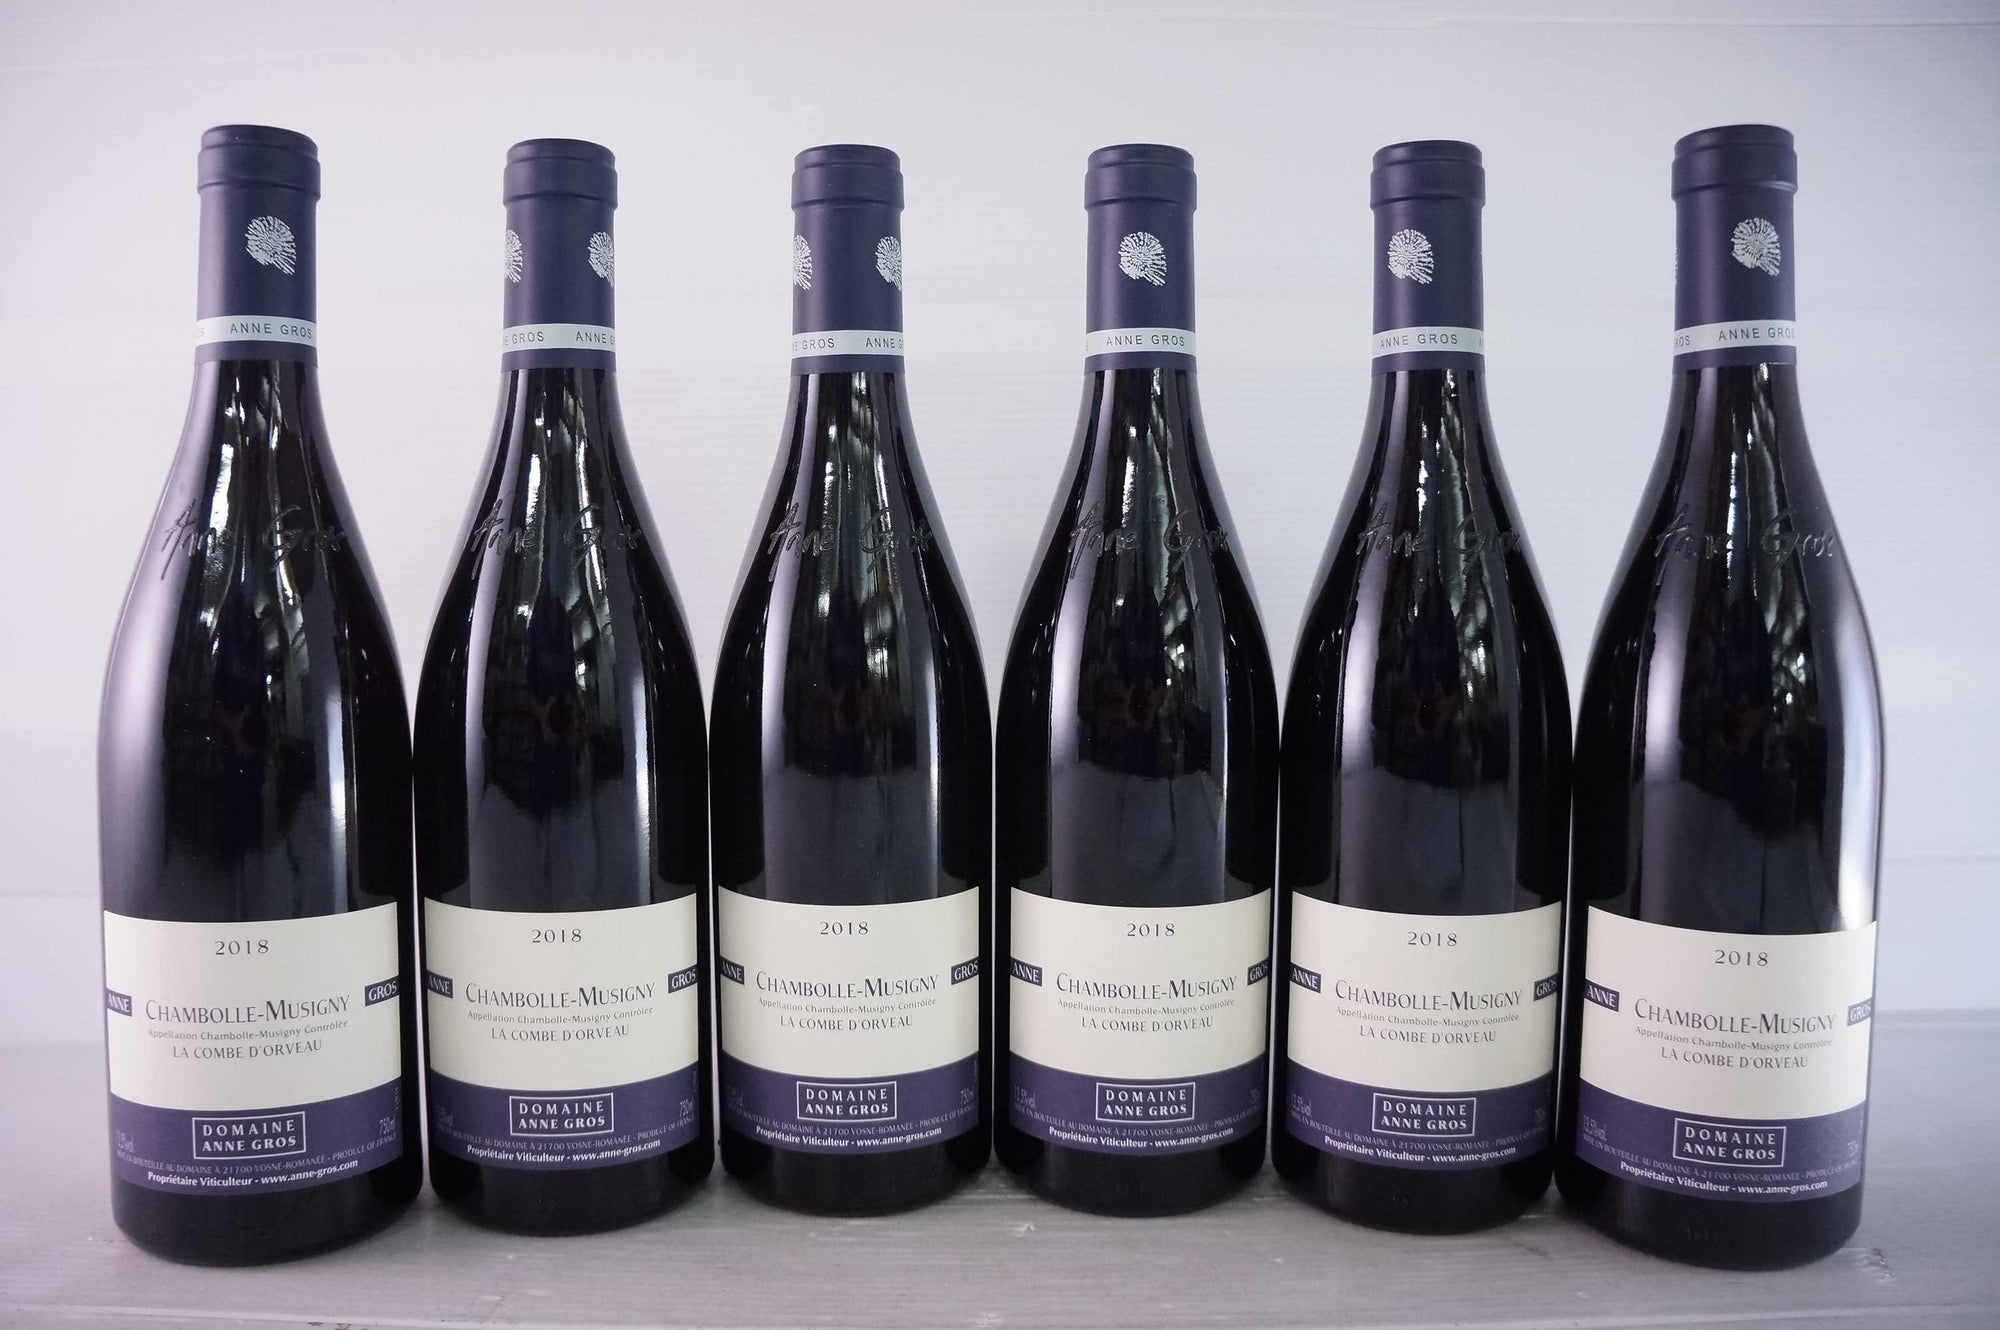 Anne Gros Chambolle Musigny La Combe d'Orveau 2018